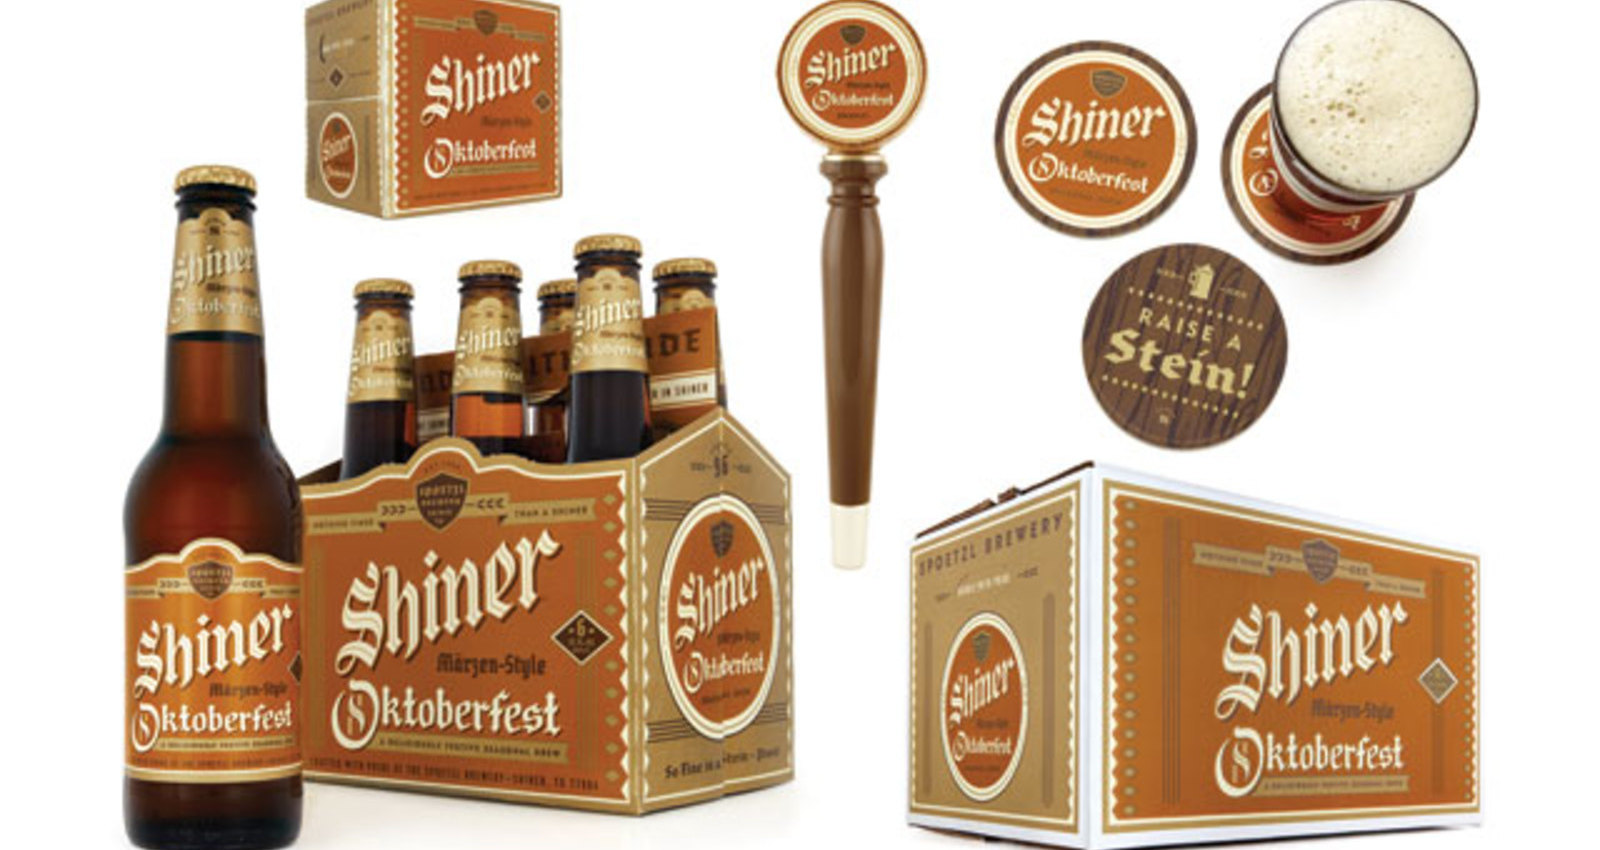 Shiner Beers Oktoberfest Packaging